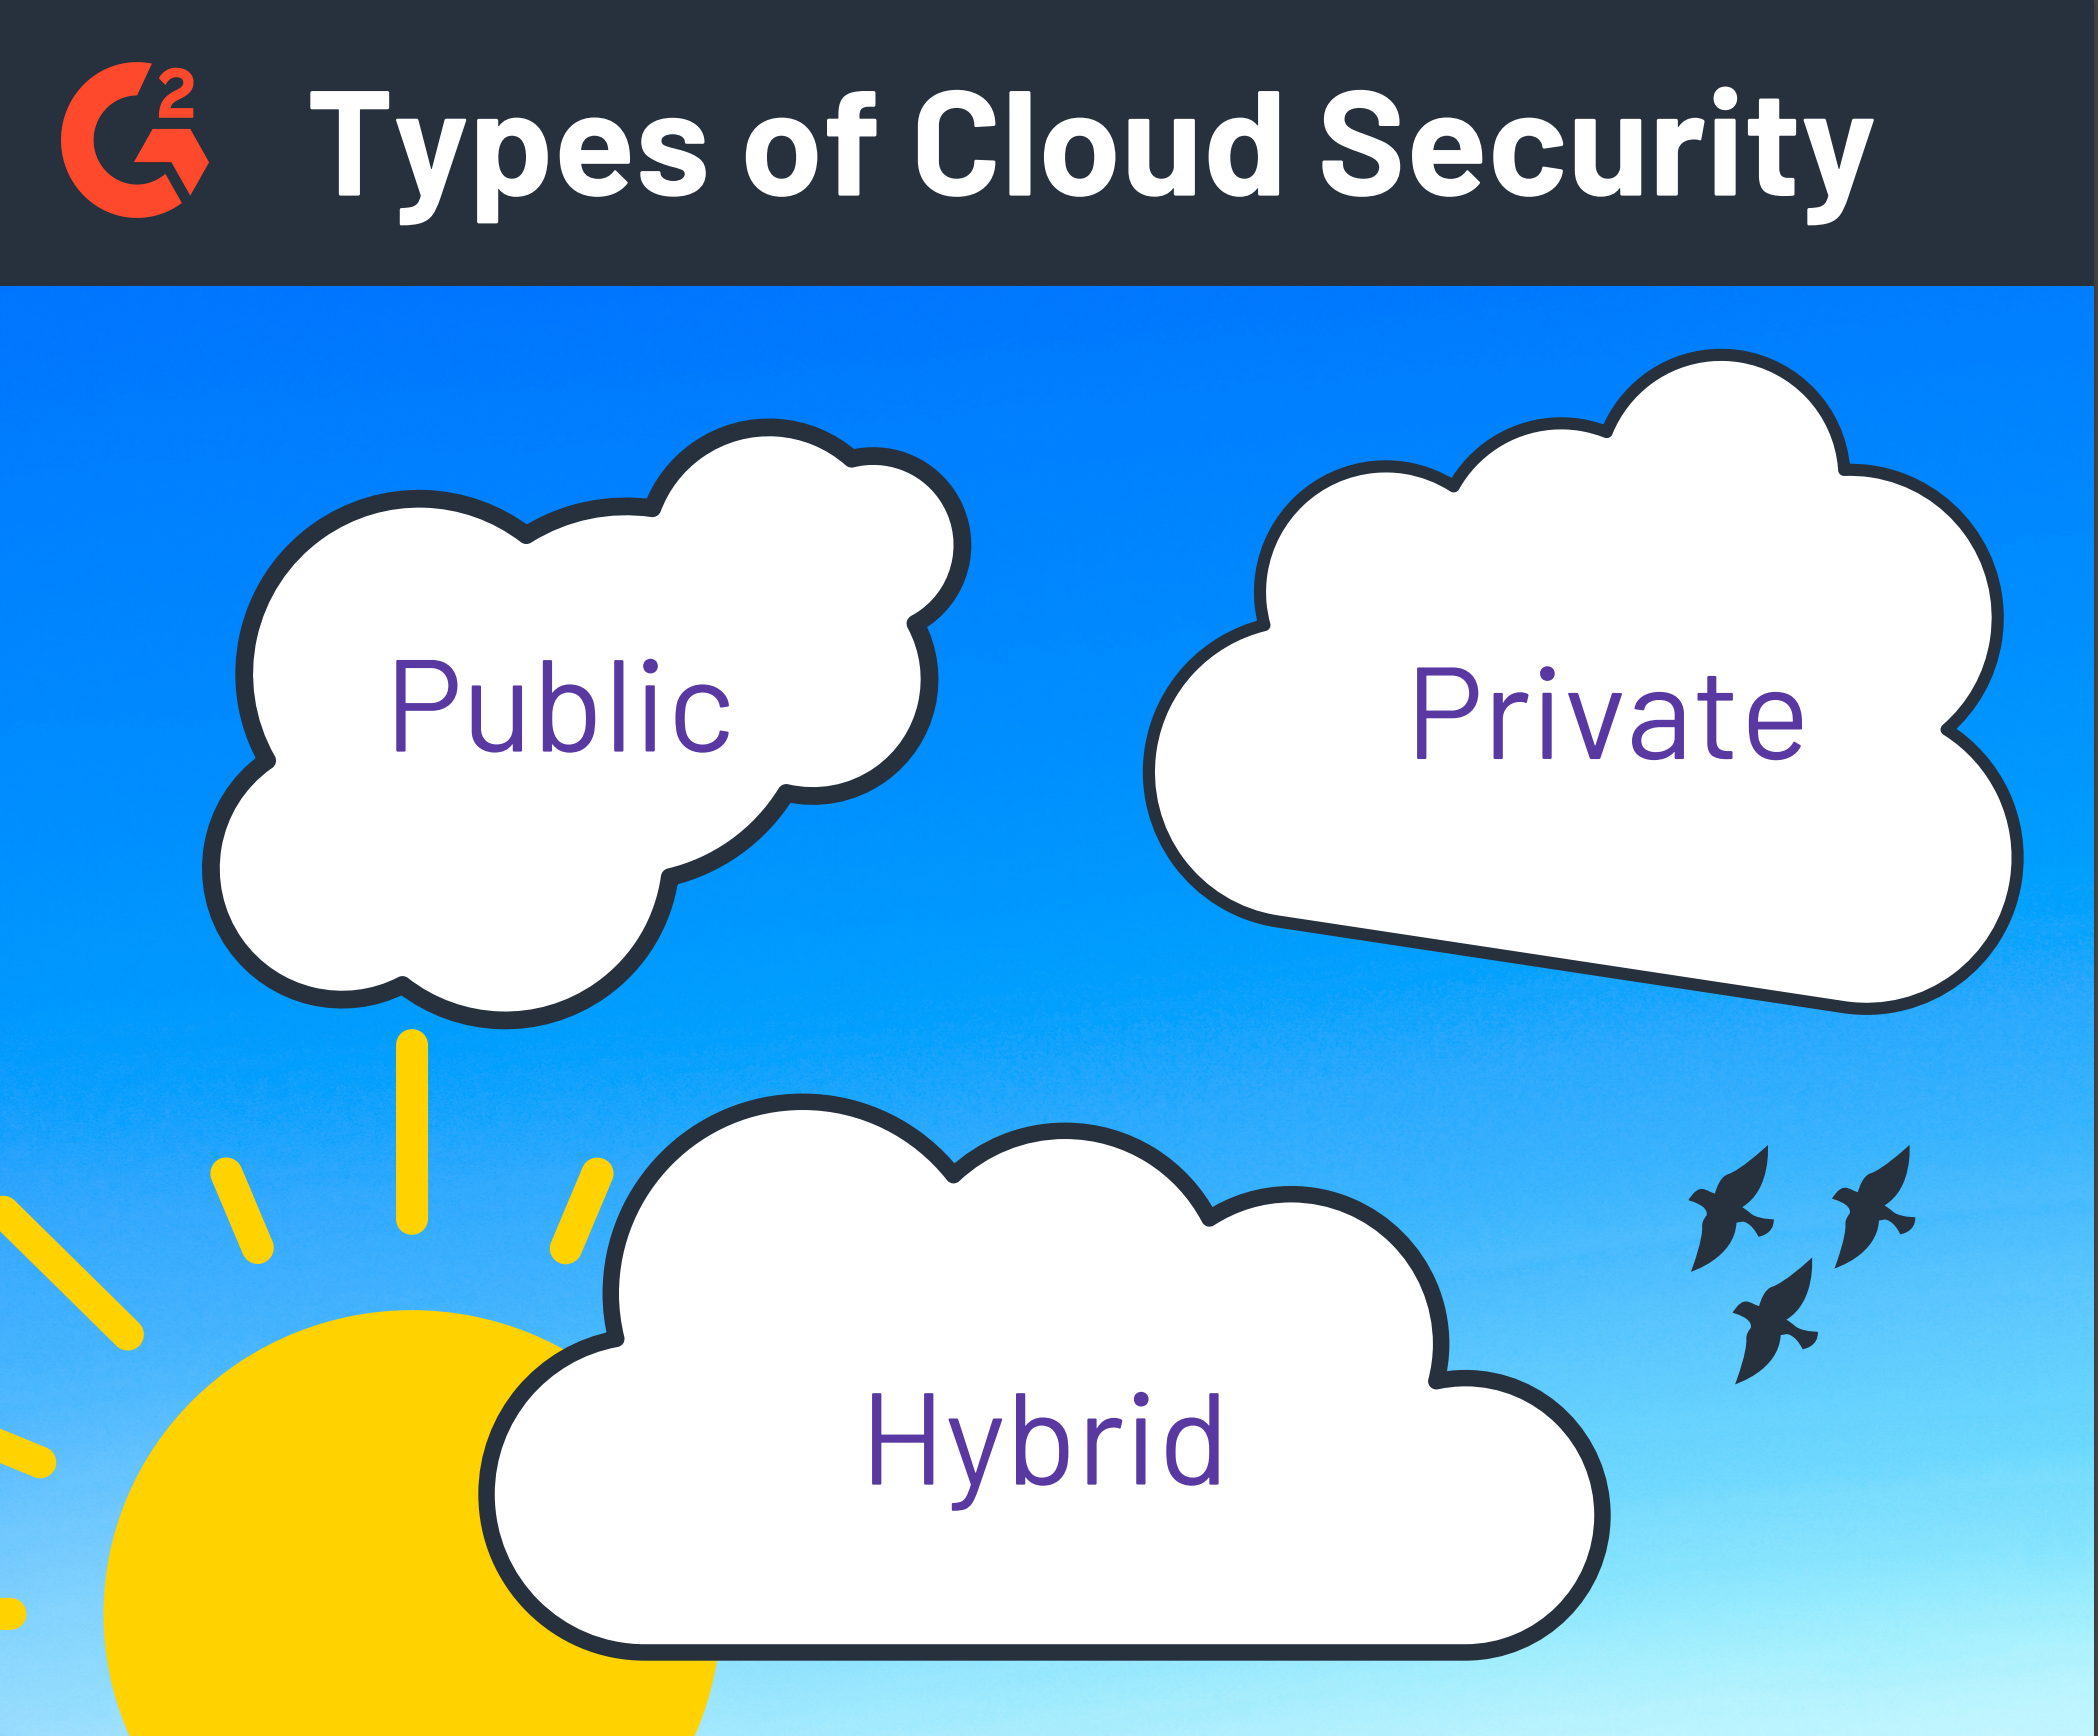 Types of Cloud Security